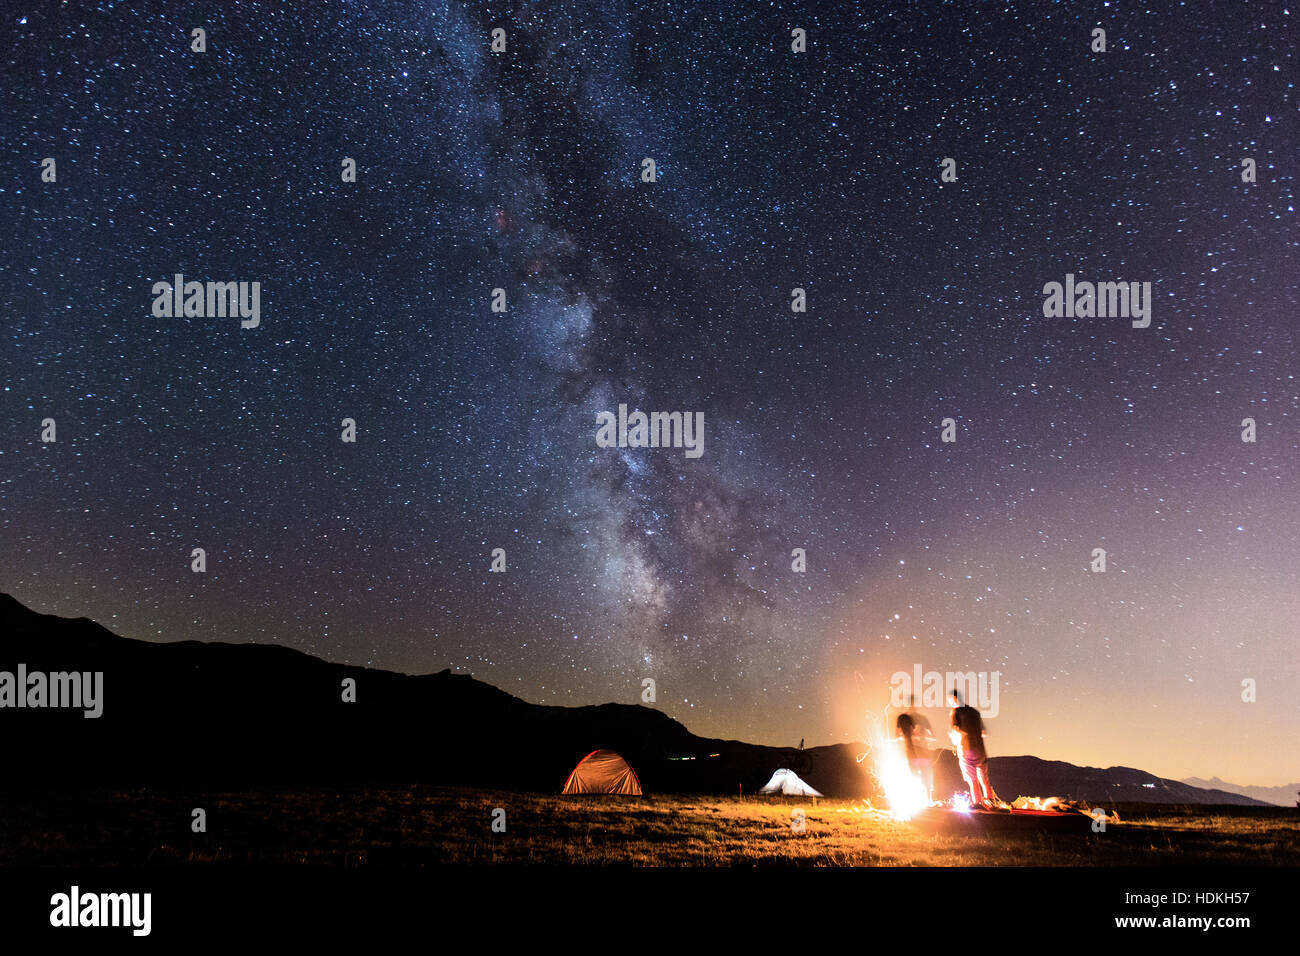 Milky Way. Night sky with stars and silhouette of two man around a fire Stock Photo